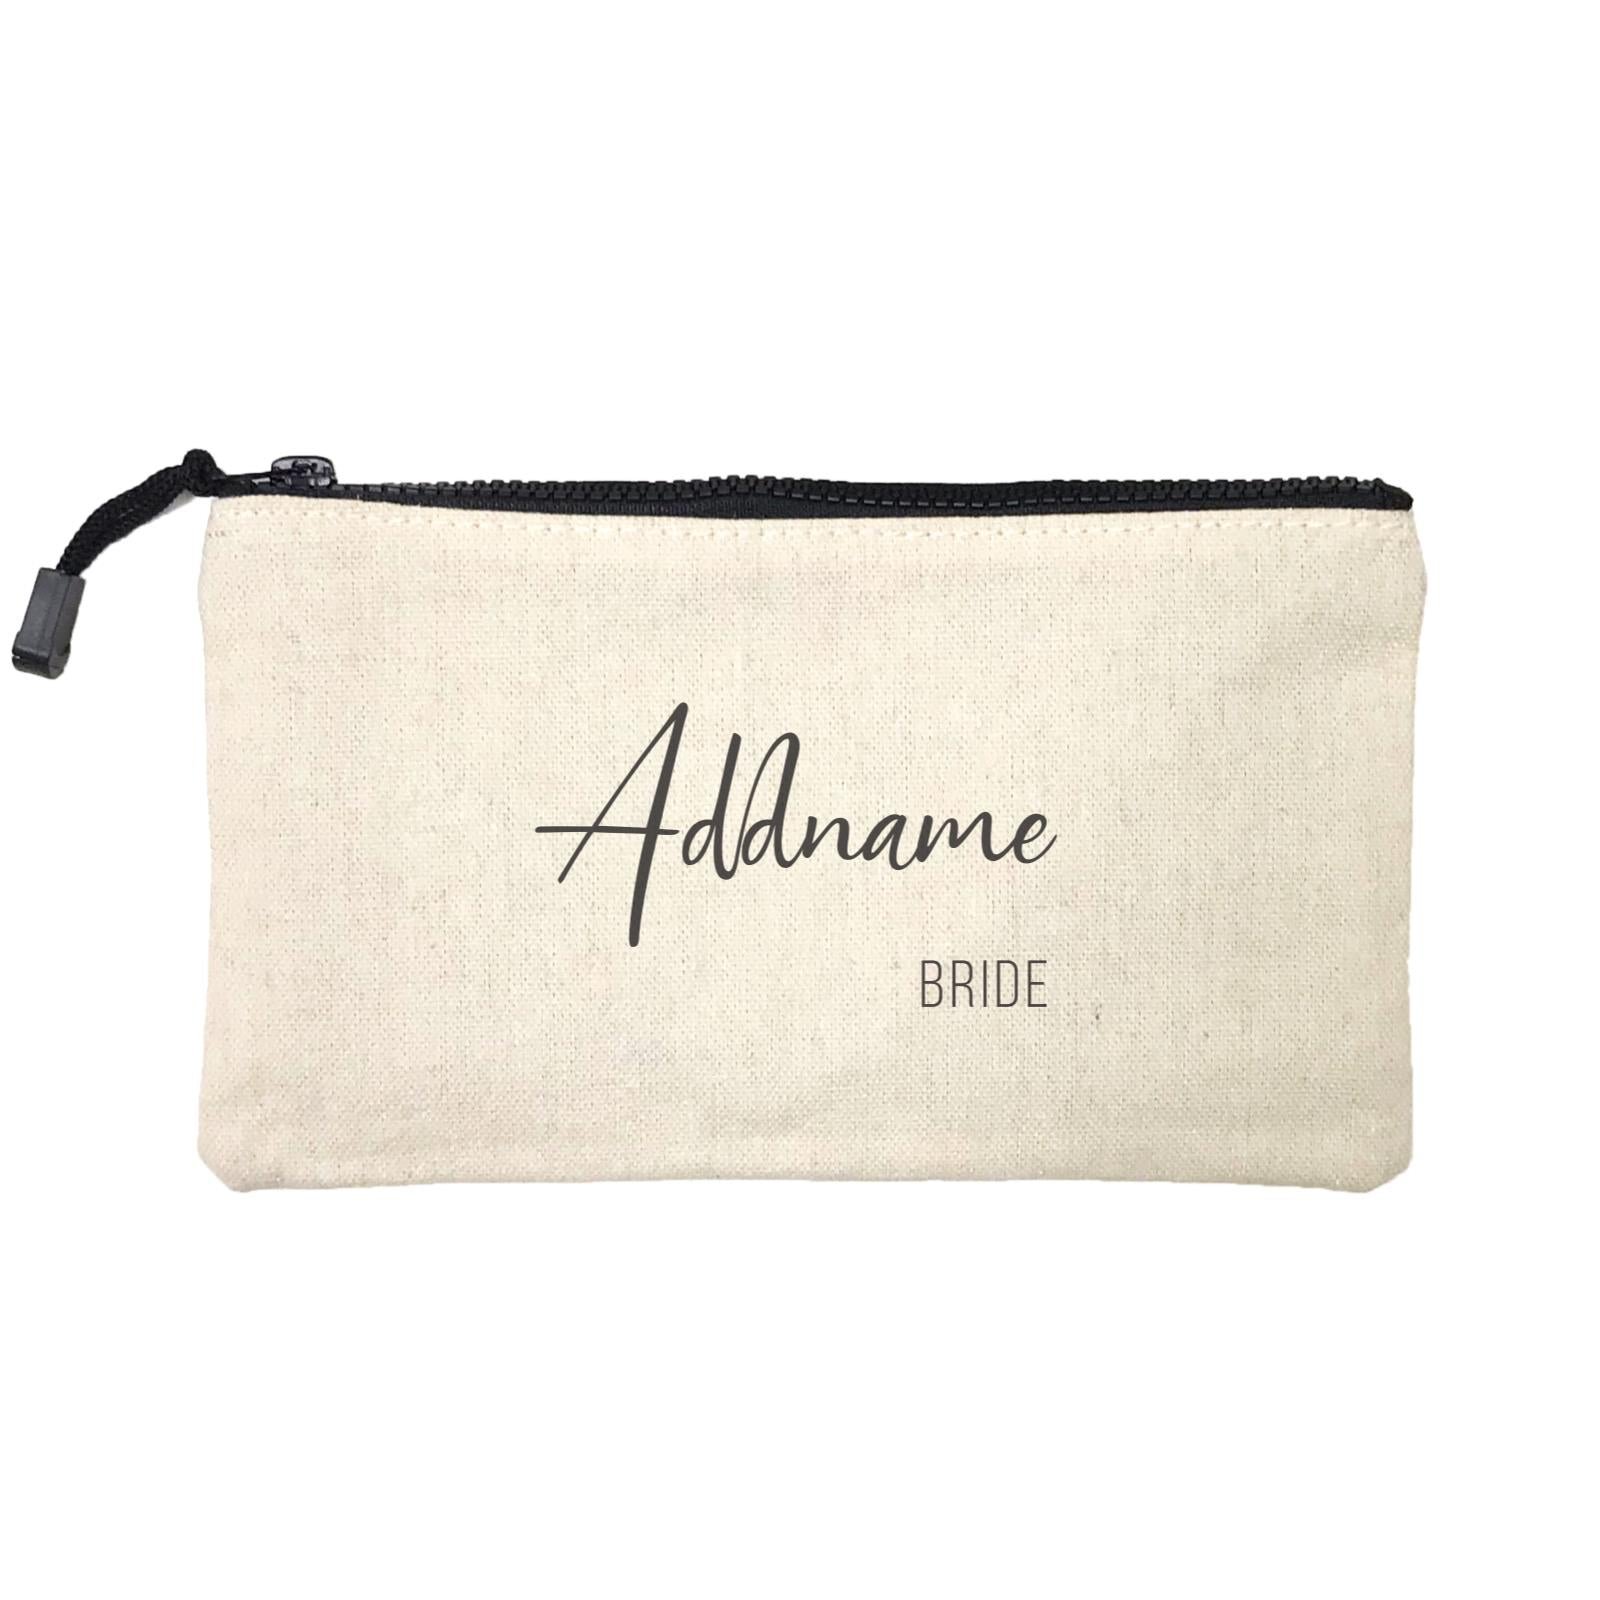 Bridesmaid Calligraphy Addname Modern Bride Mini Accessories Stationery Pouch